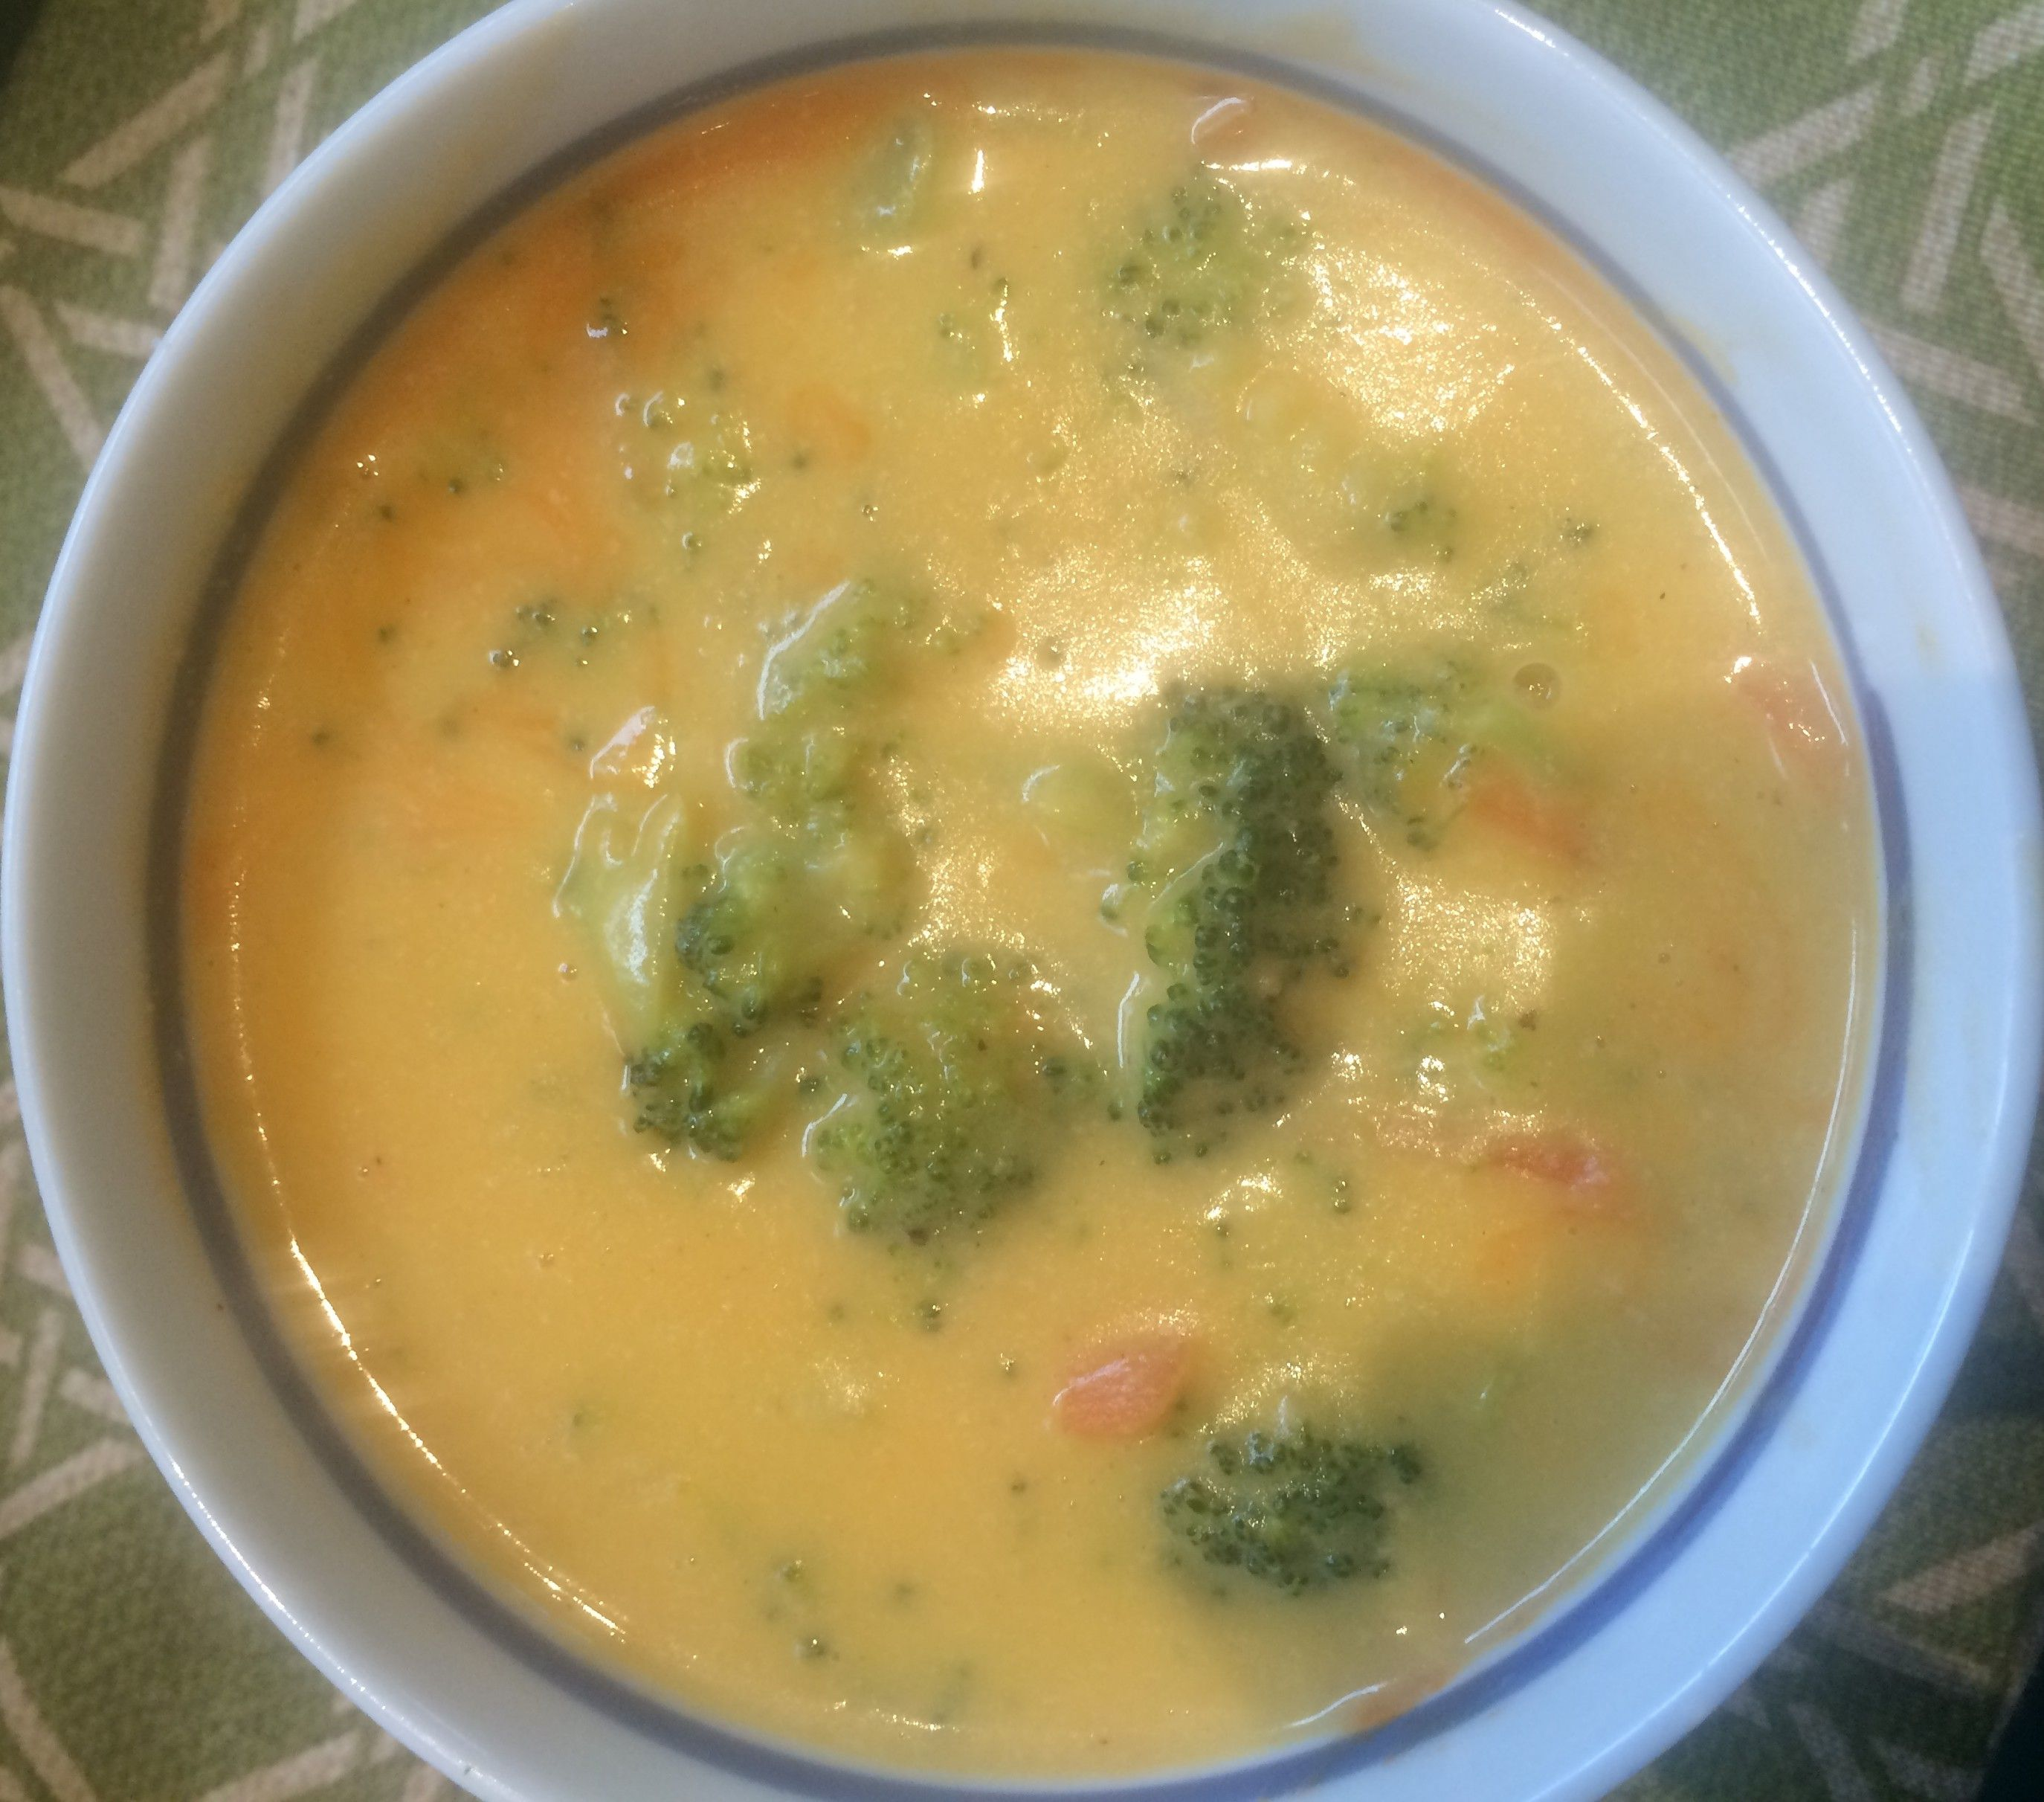 As Good As It Gets Vegan Broccoli Cheddar Soup - Powered by @ultimaterecipe